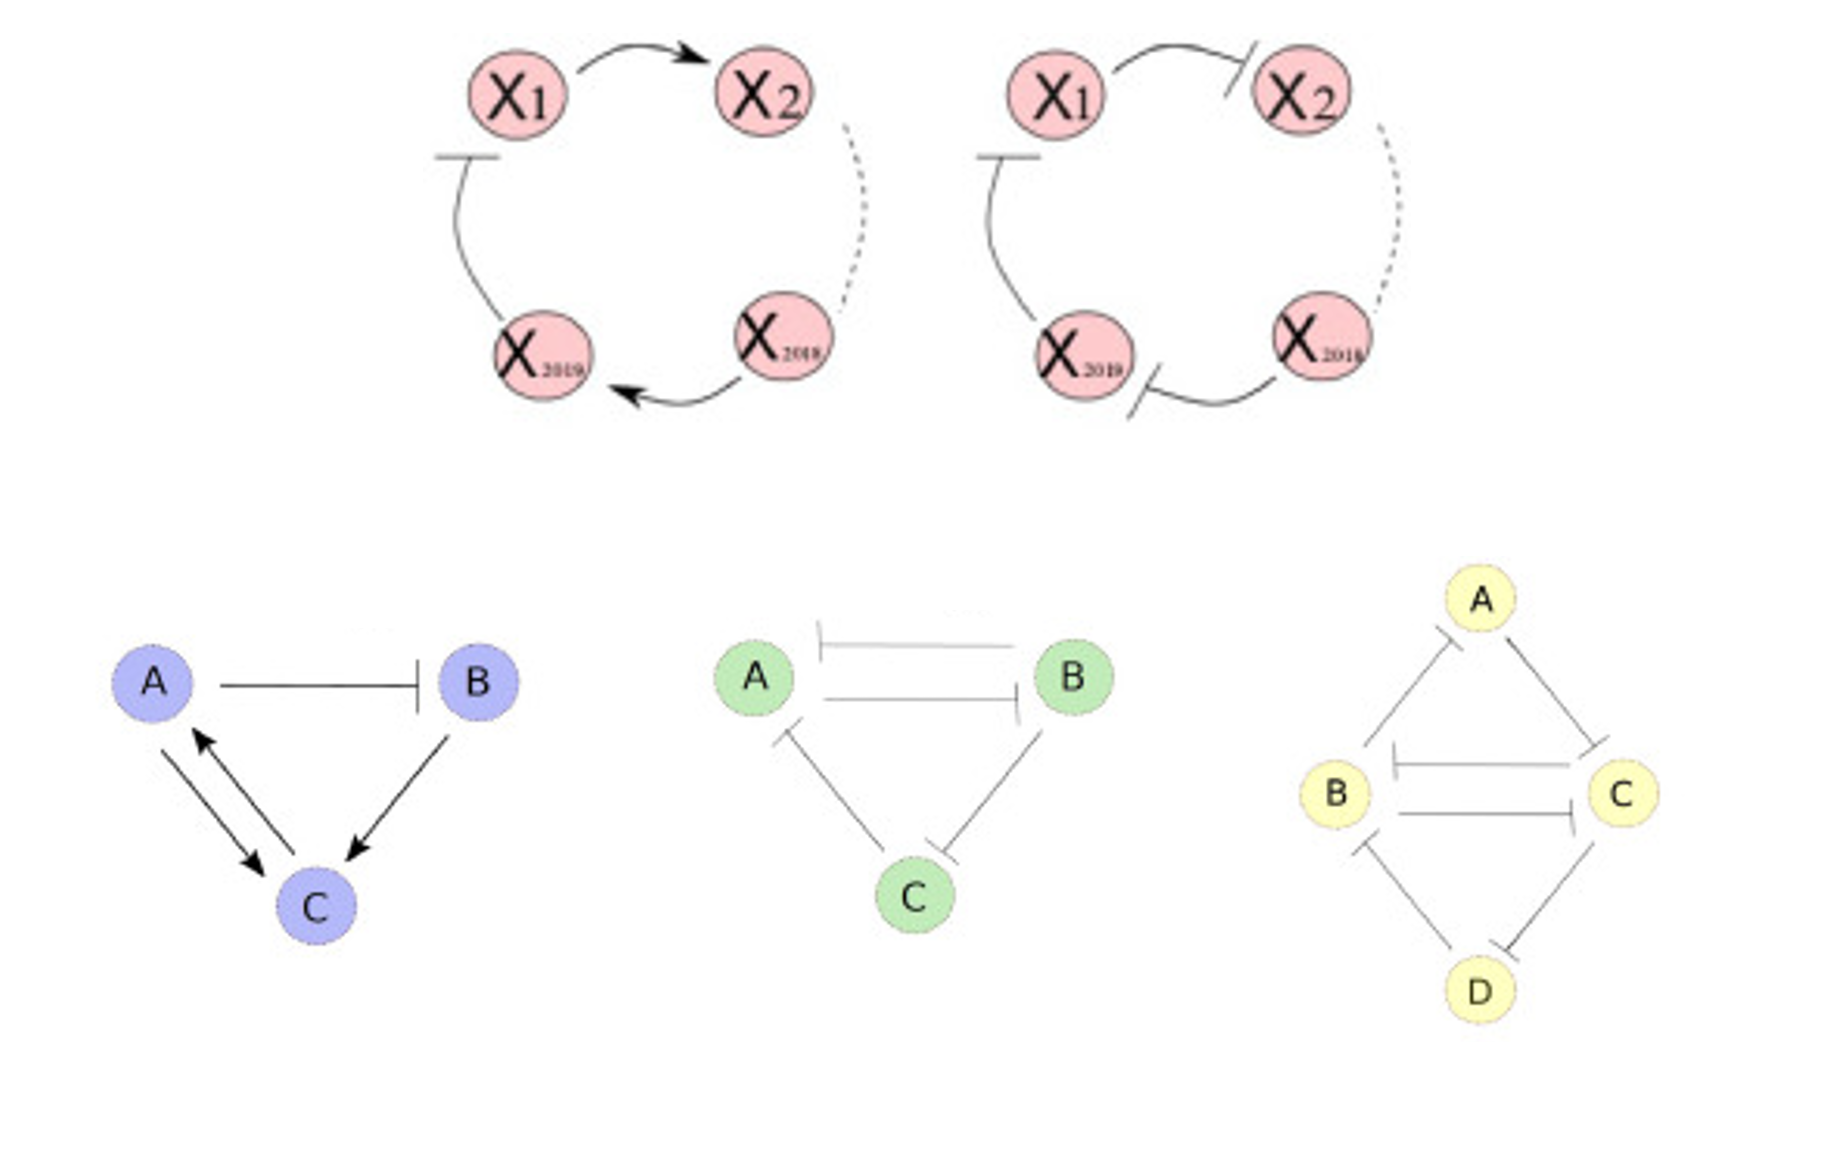 Physics of Interaction Networks